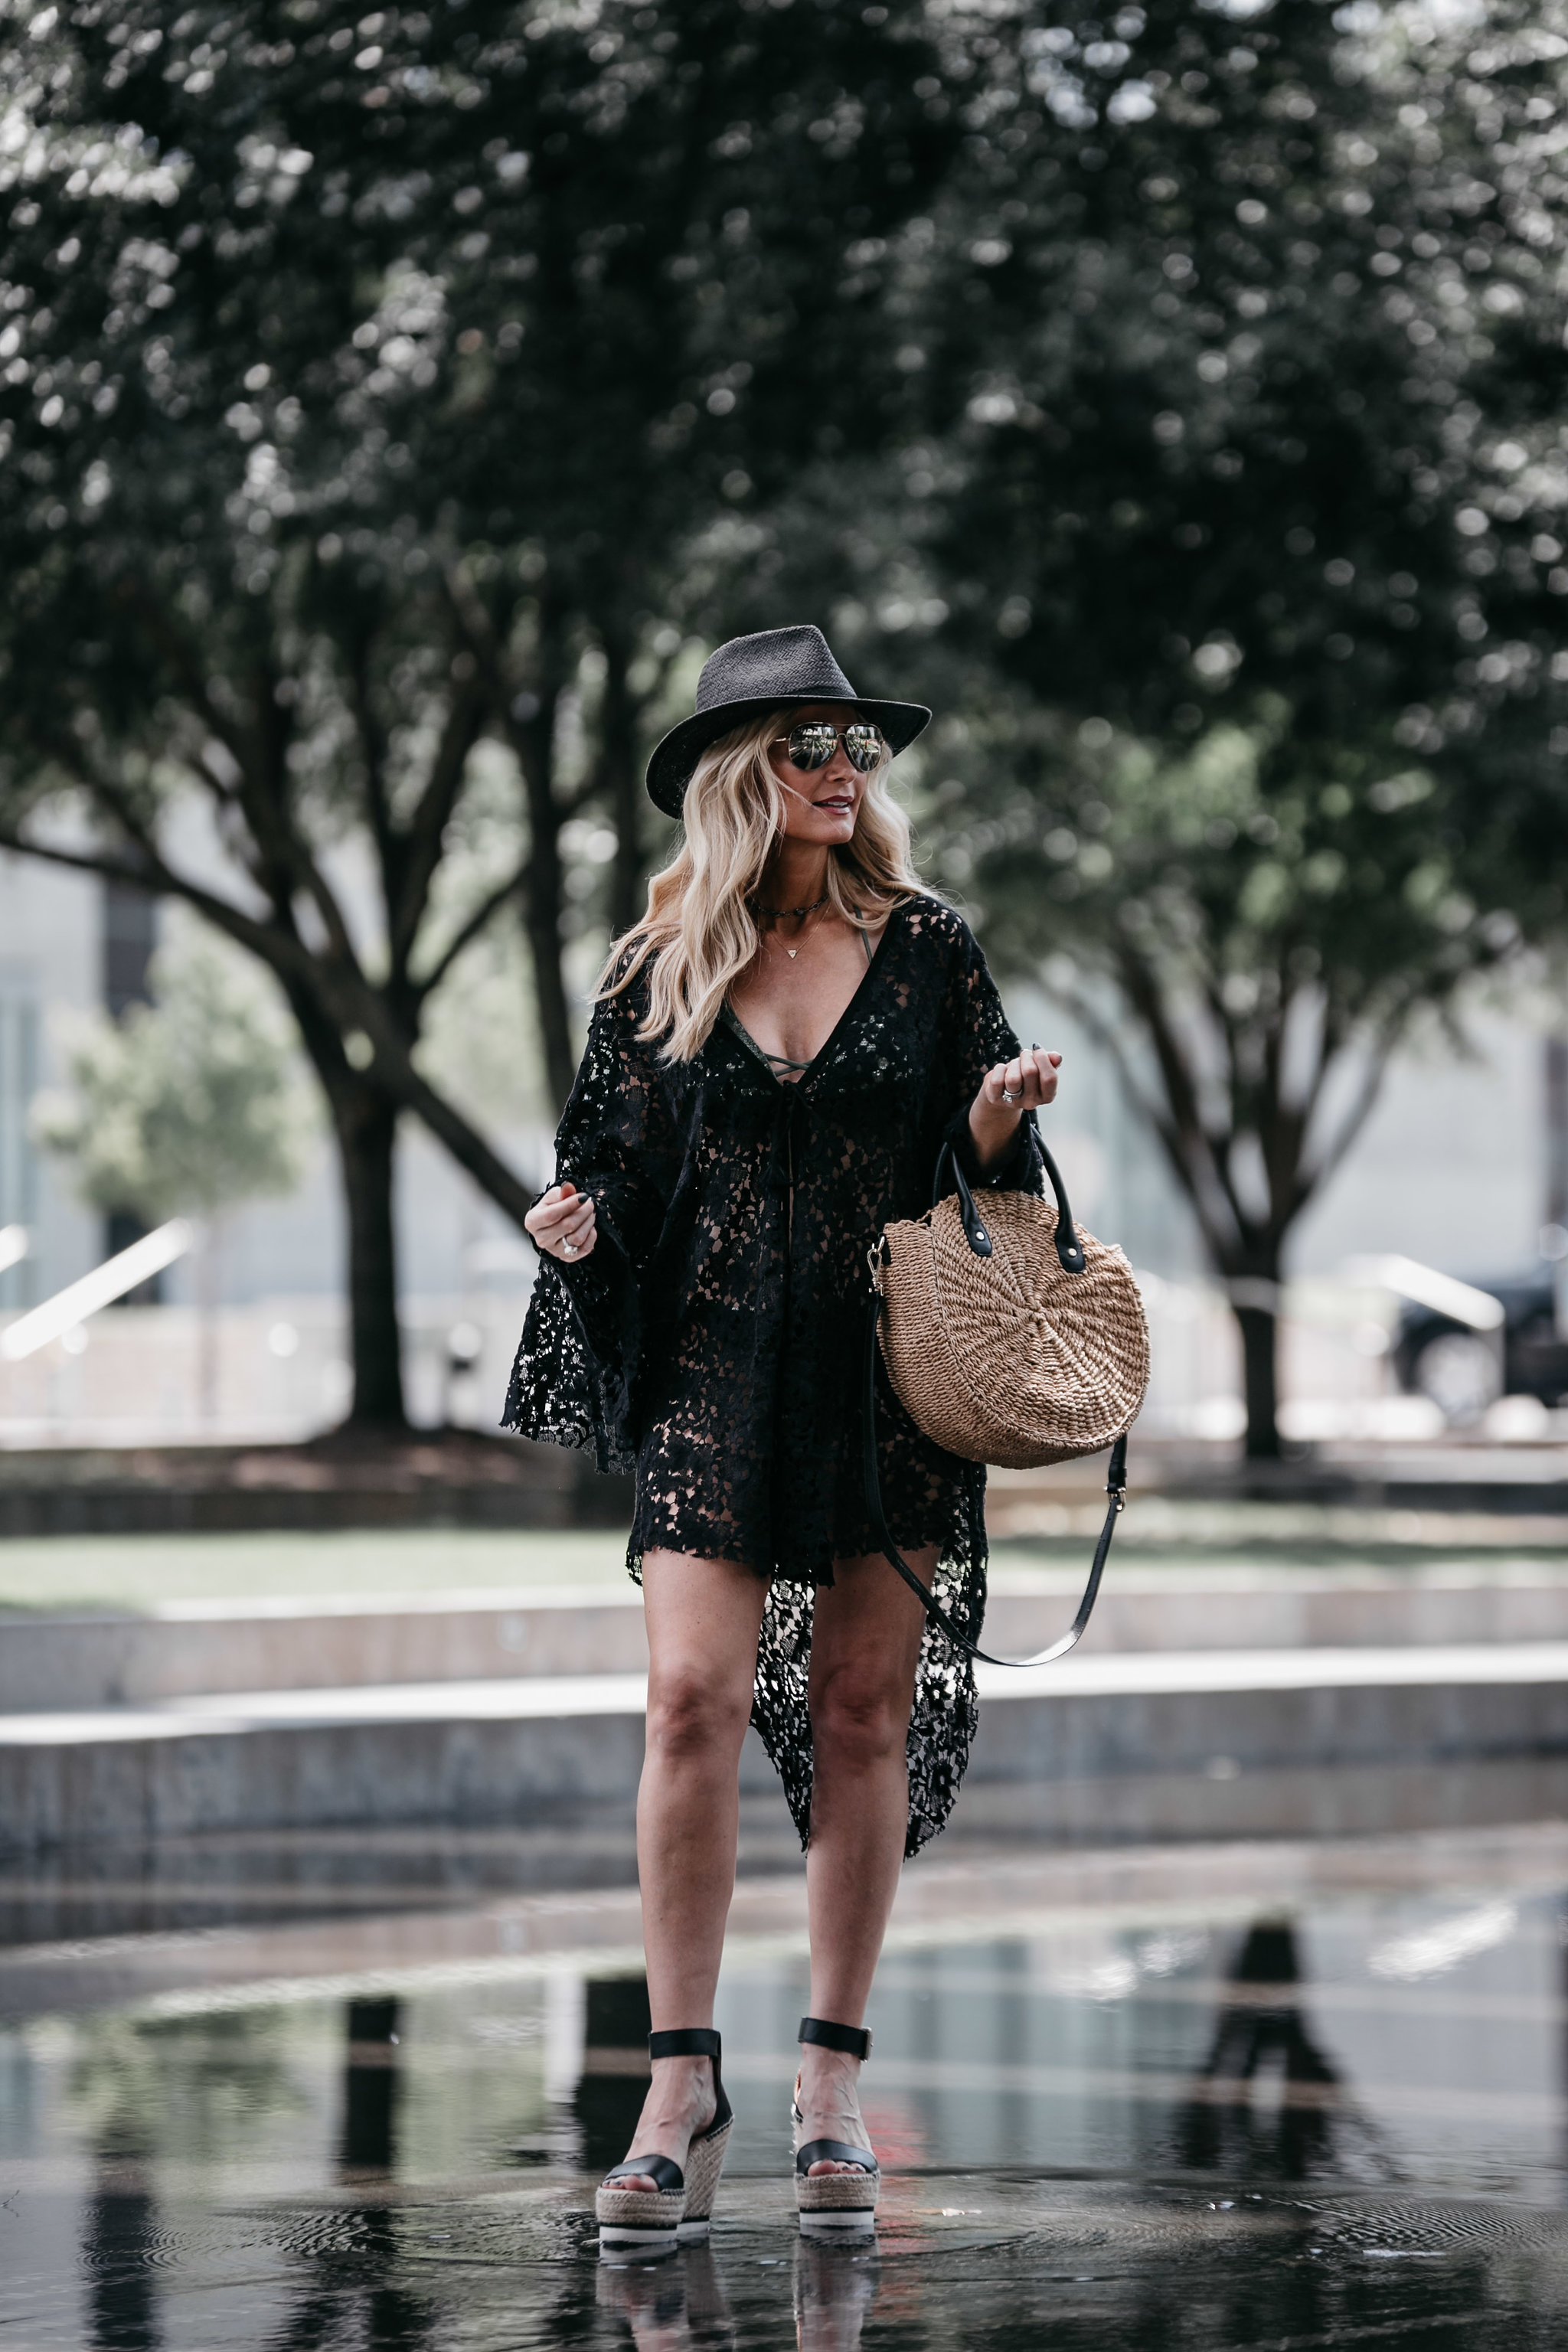 Black beach cover-up, black straw hat, wedges and woven bag